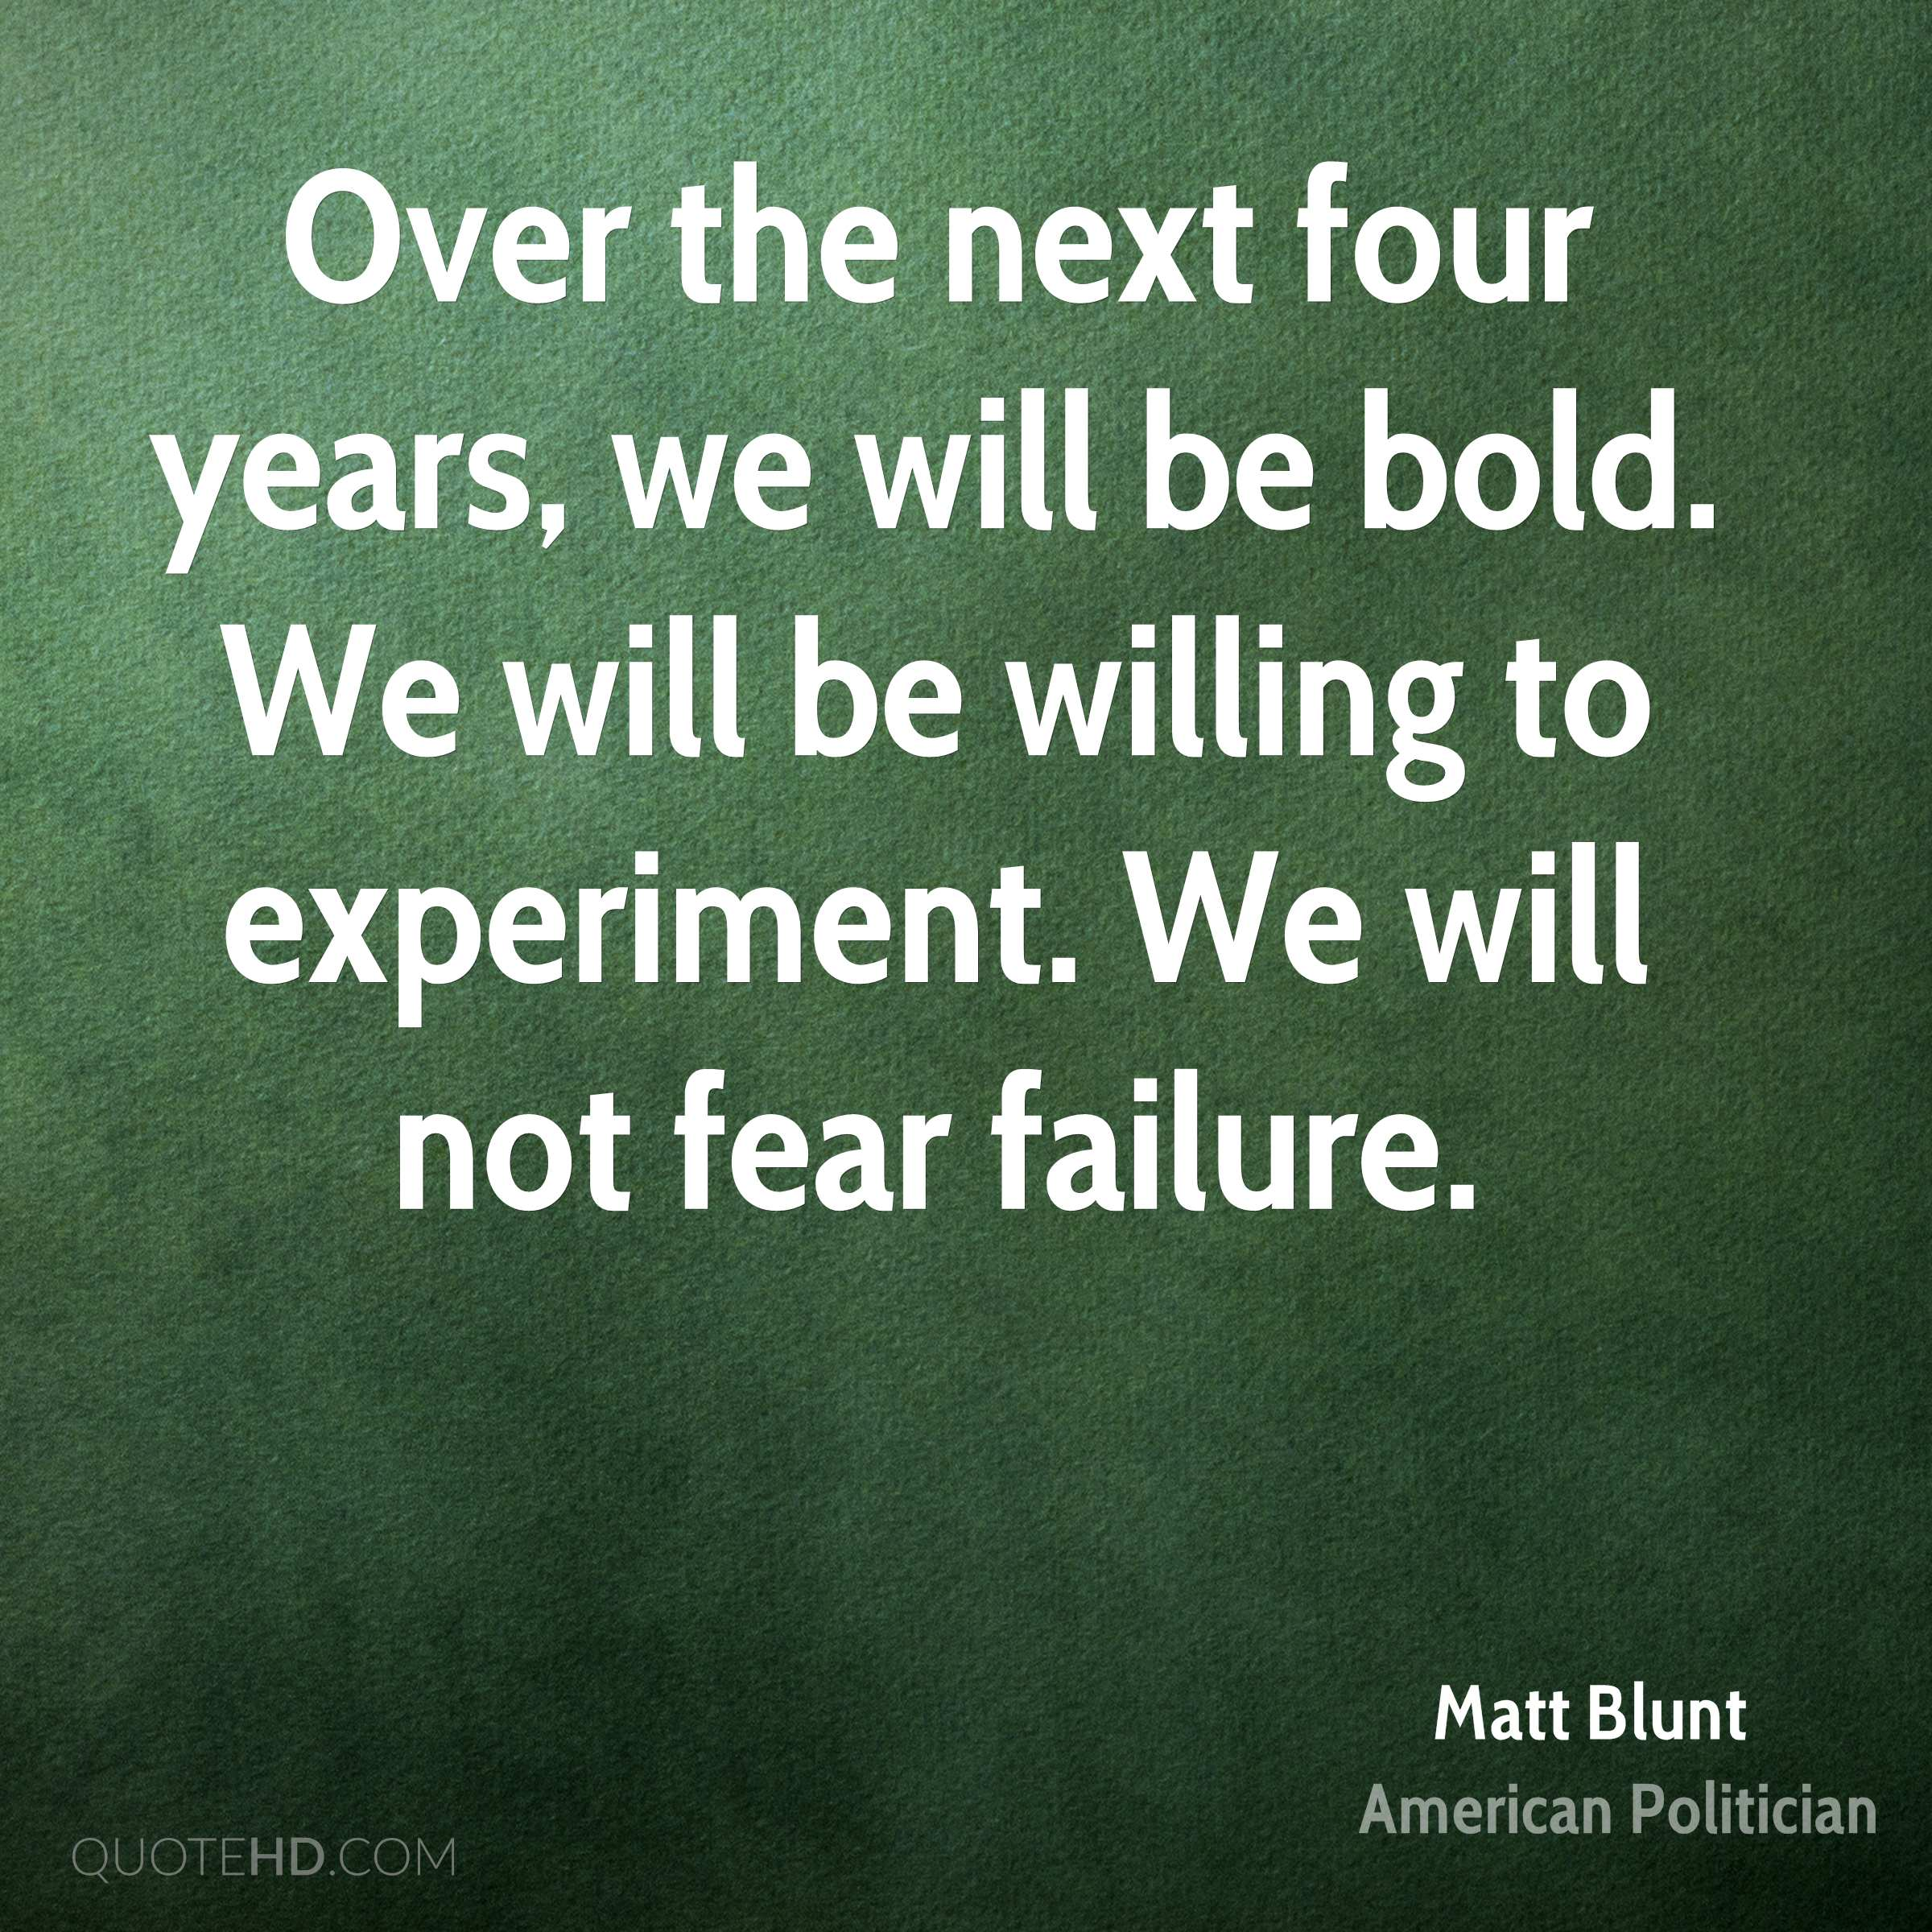 Over the next four years, we will be bold. We will be willing to experiment. We will not fear failure.